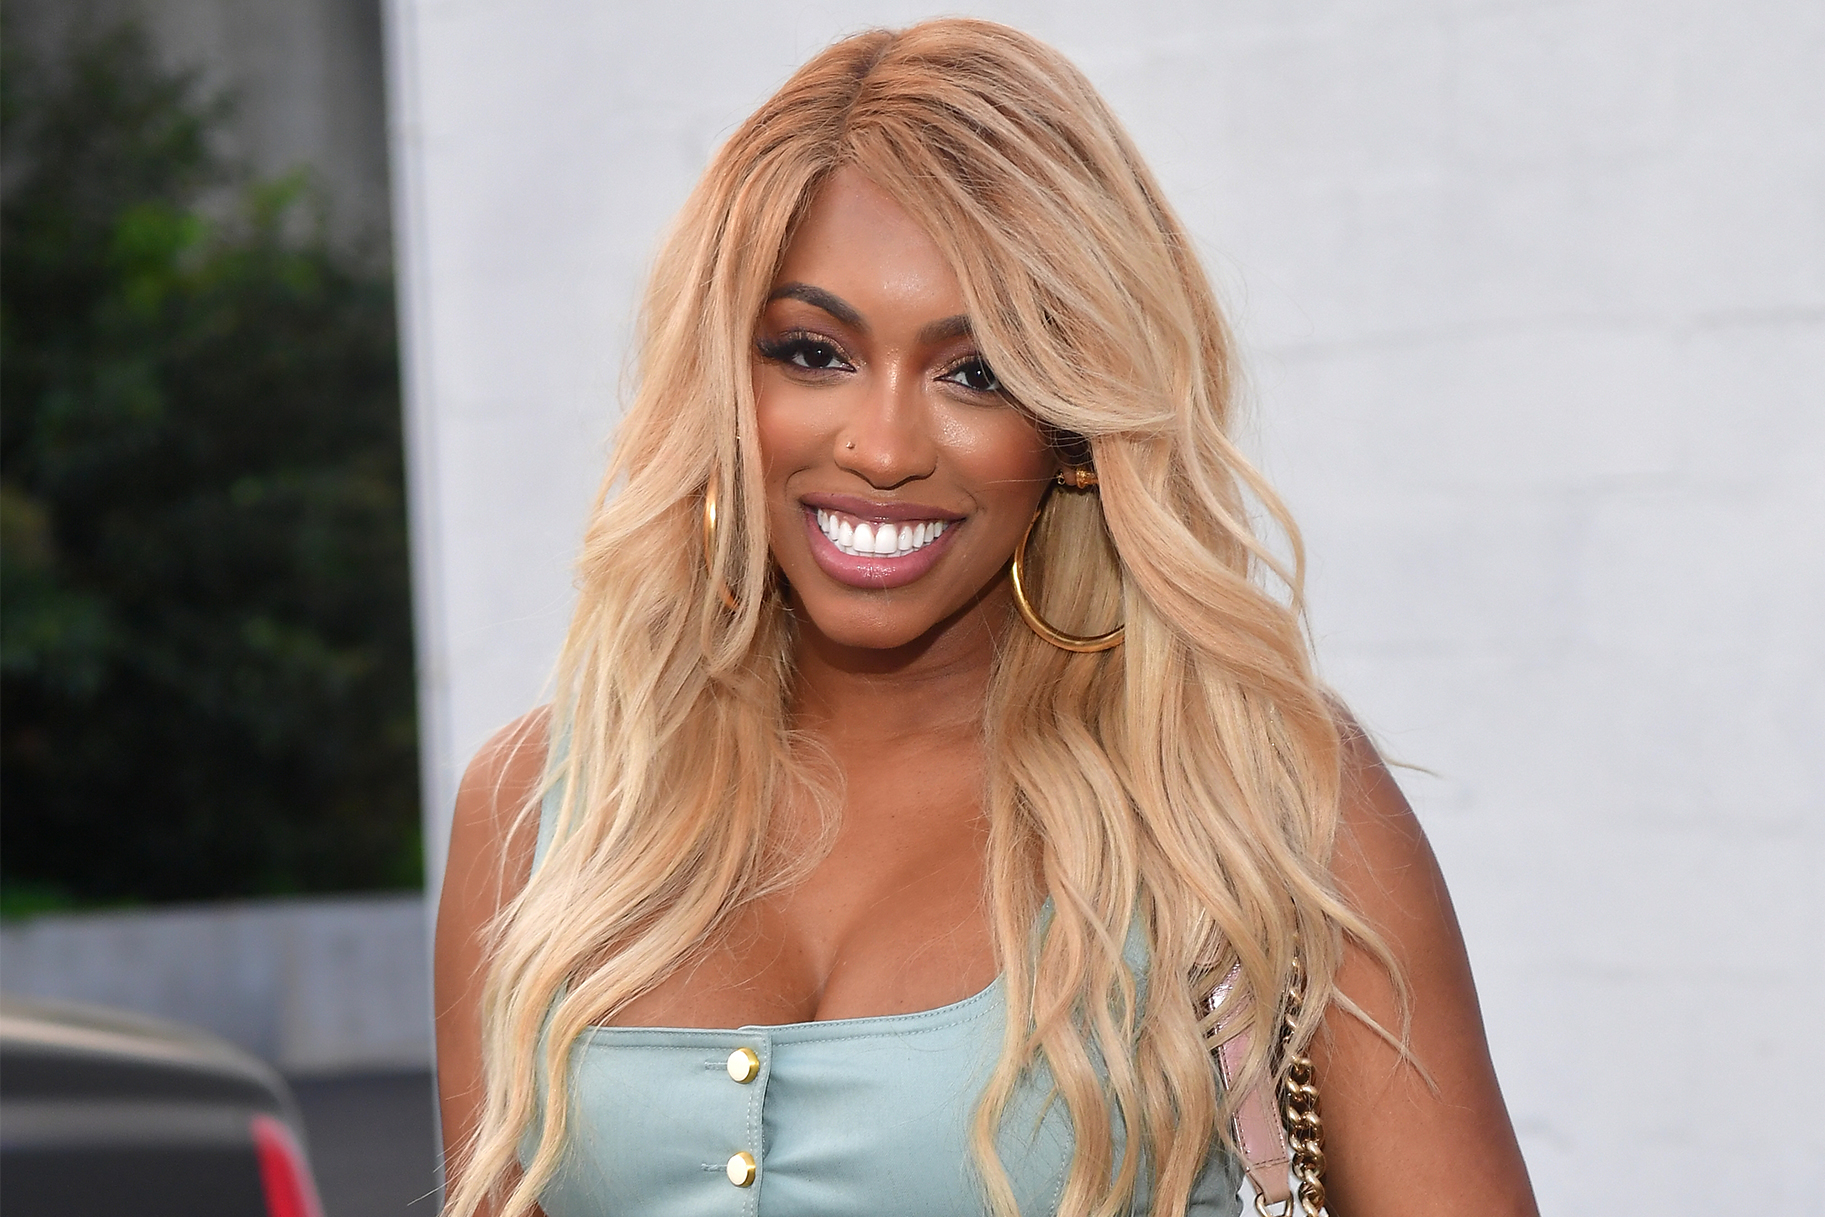 porsha-williams-looks-amazing-in-this-recent-photo-see-her-flaunting-red-hair